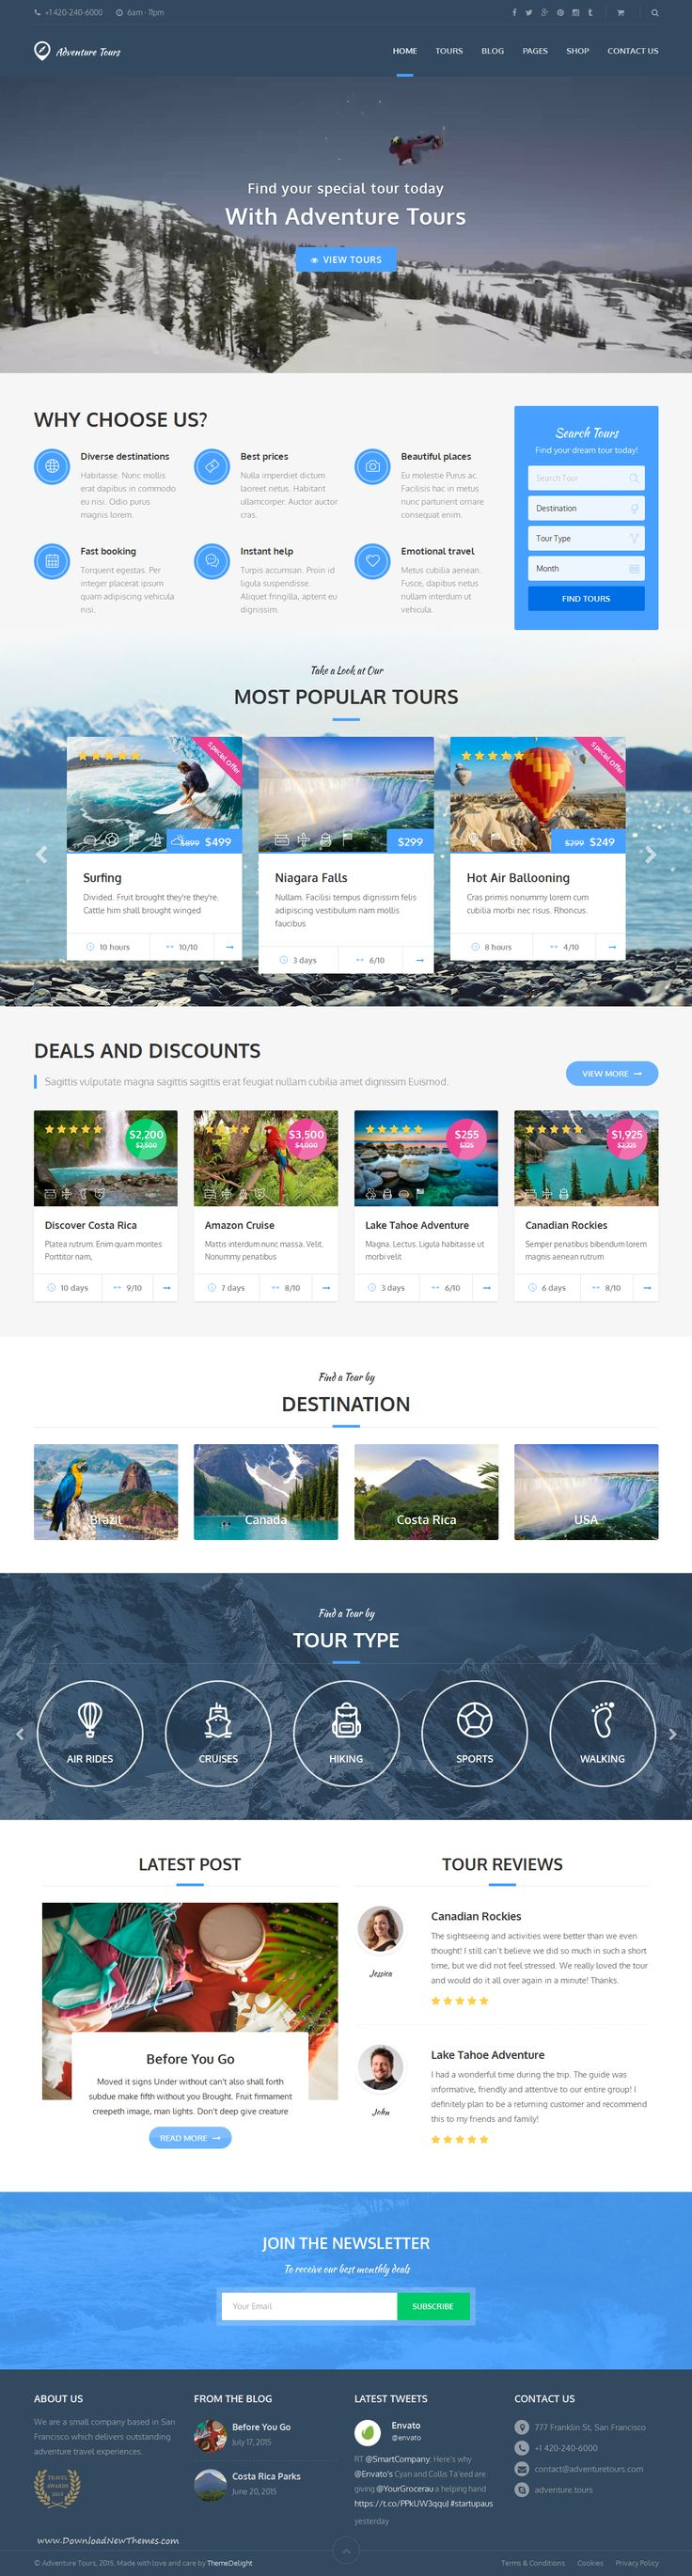 Adventure Tours is a WordPress theme developed for #travel agencies and tour operators of any size. It offers a lot of flexibility and possibilities in setting up tours. #templates